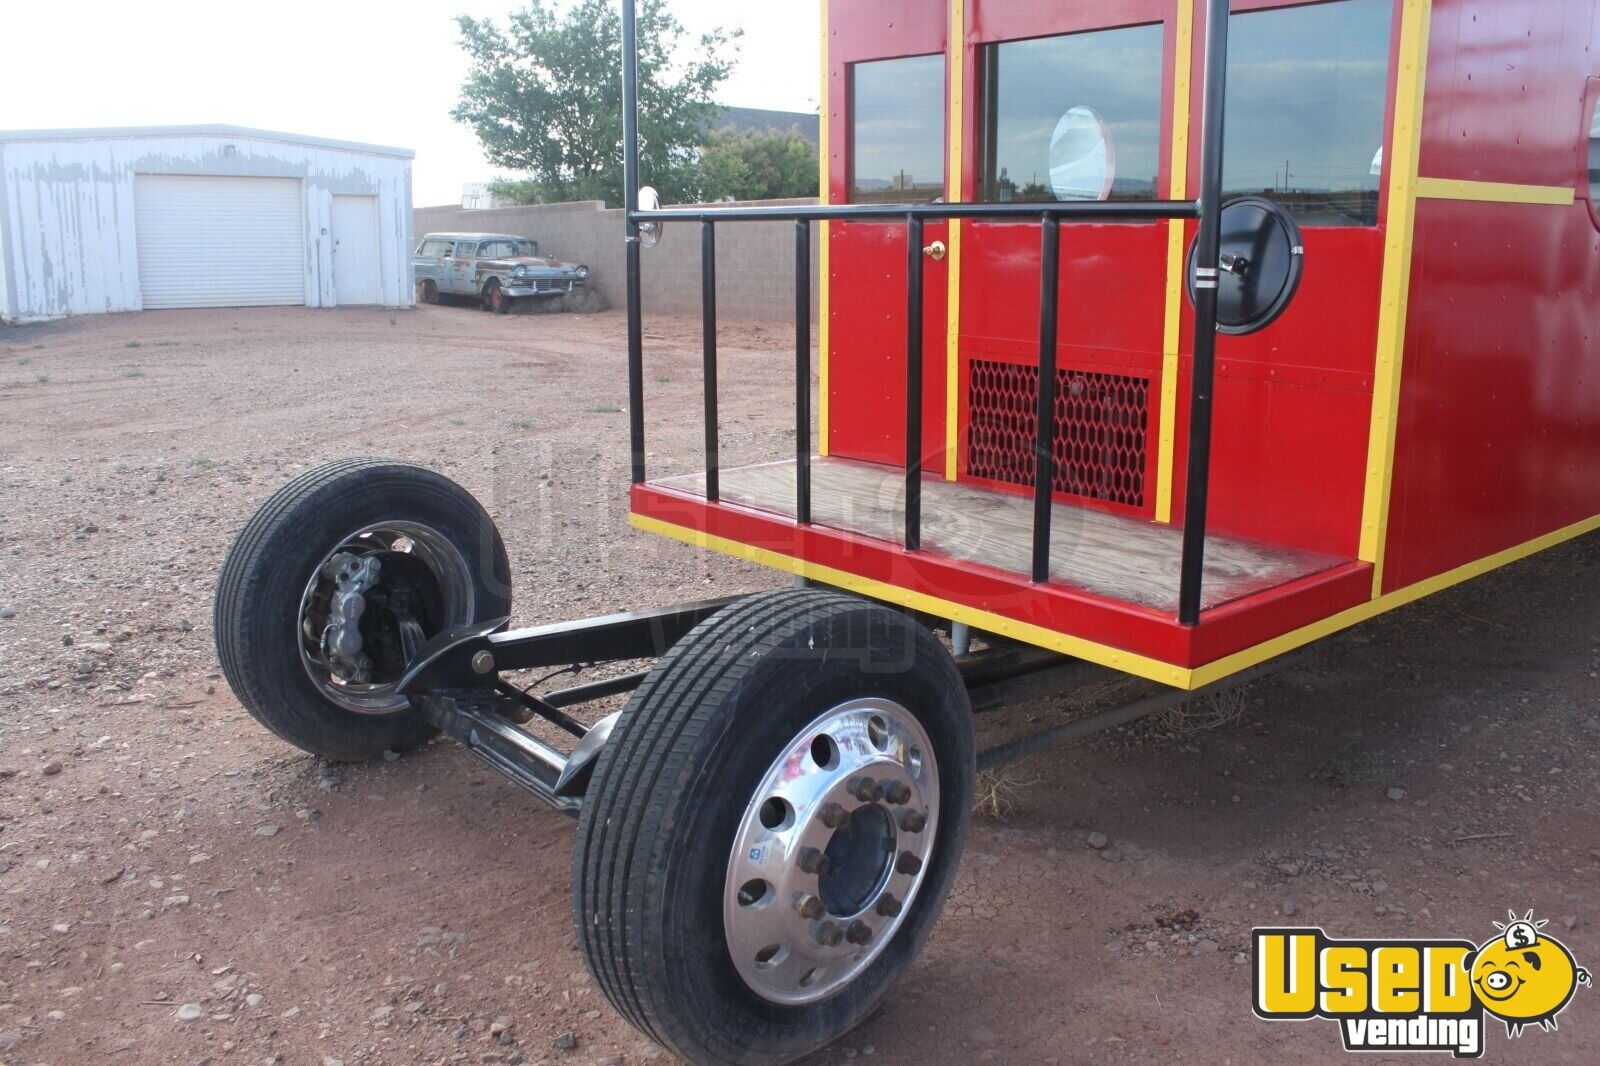 2014 Caboose Other Mobile Business 8 Arizona for Sale - 8